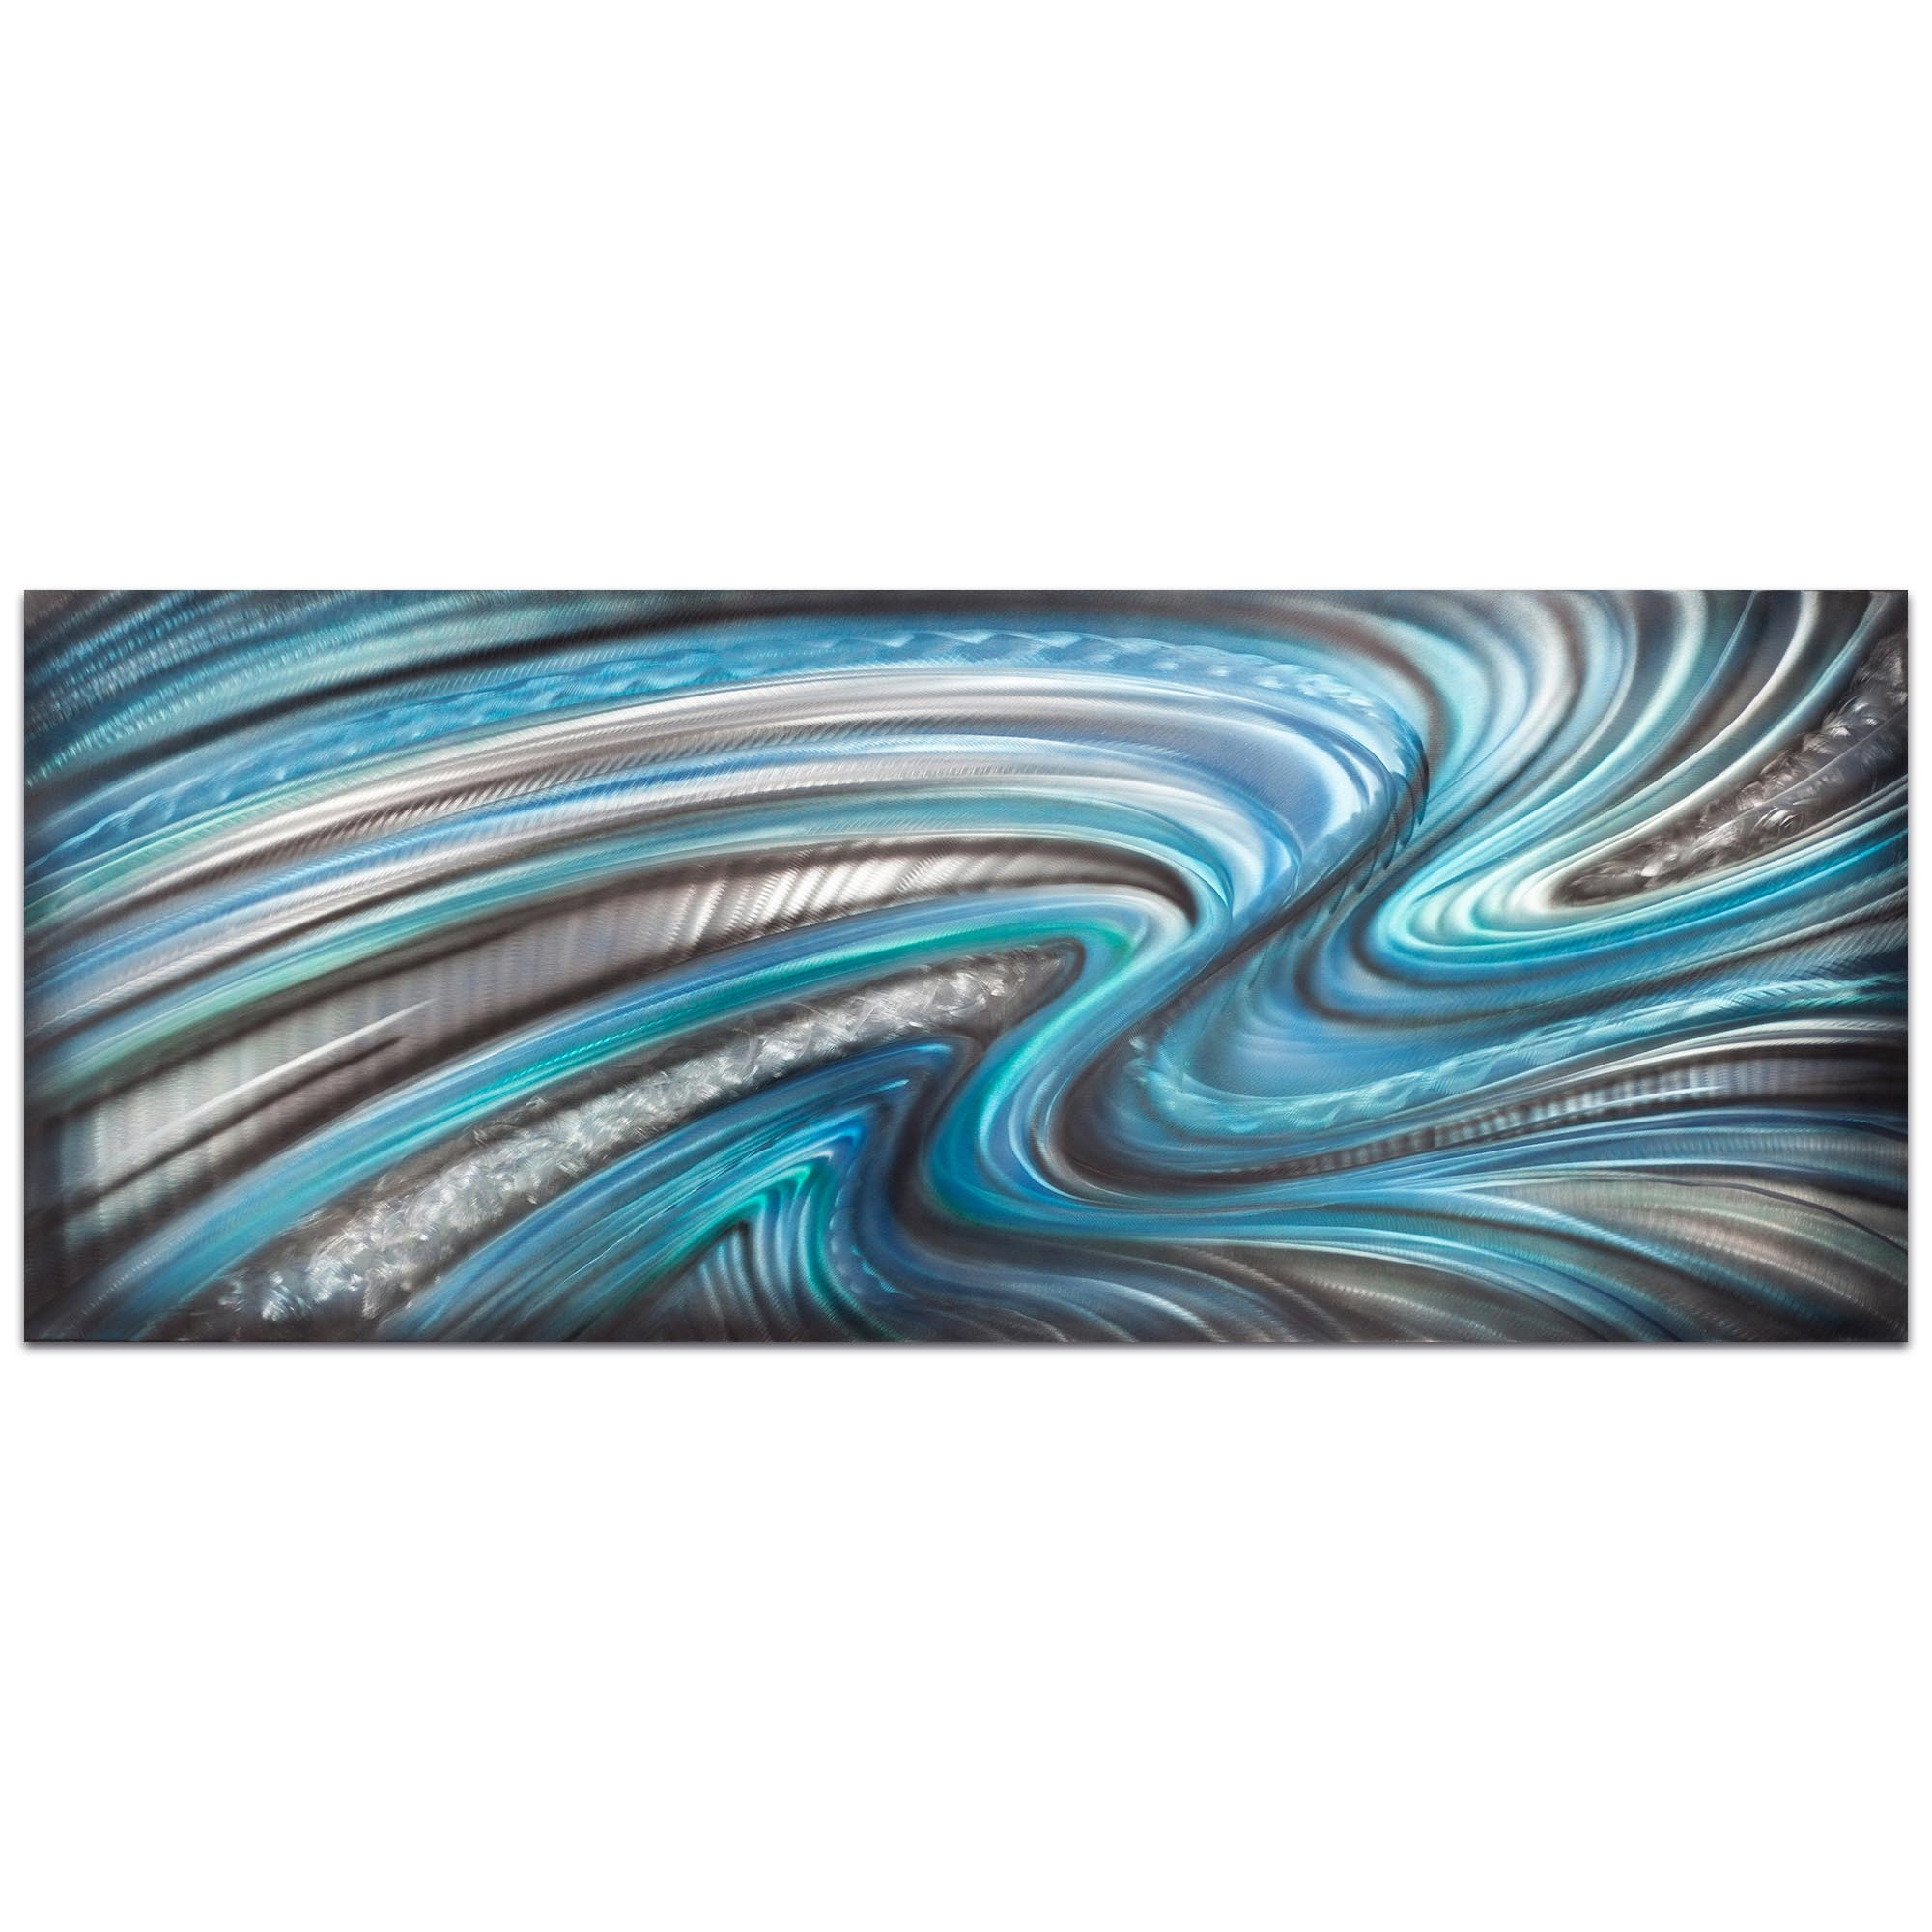 Abstract Wall Art 'Beyond the Waves' - Urban Decor on Metal or Plexiglass